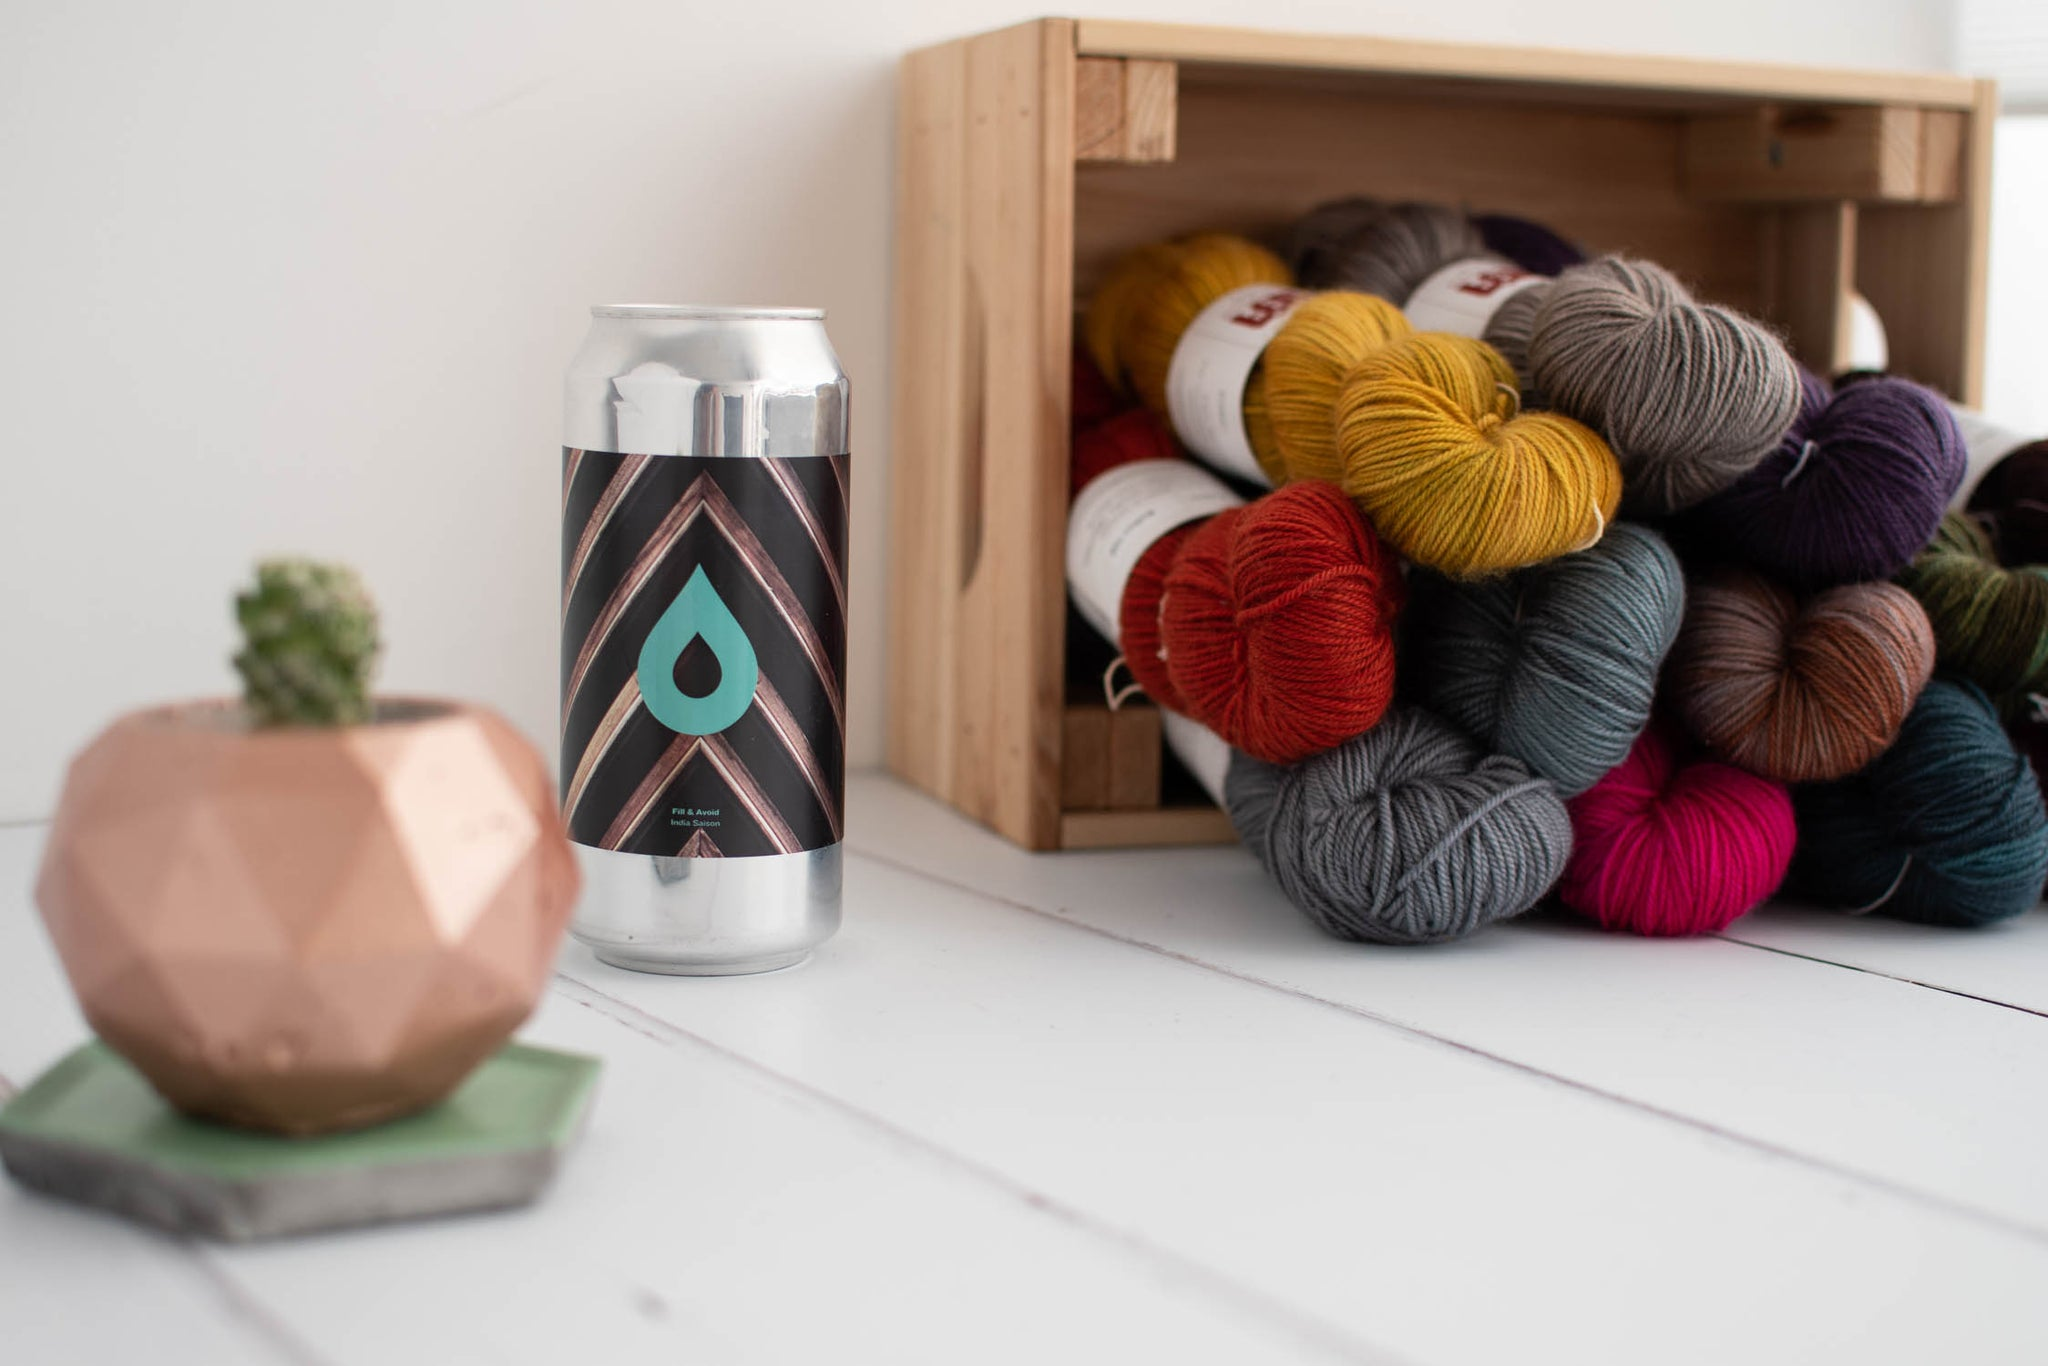 A beer can, a cacti in a geometric pot and a collection of hand dyed skeins sit on a white table in front of a white wall.